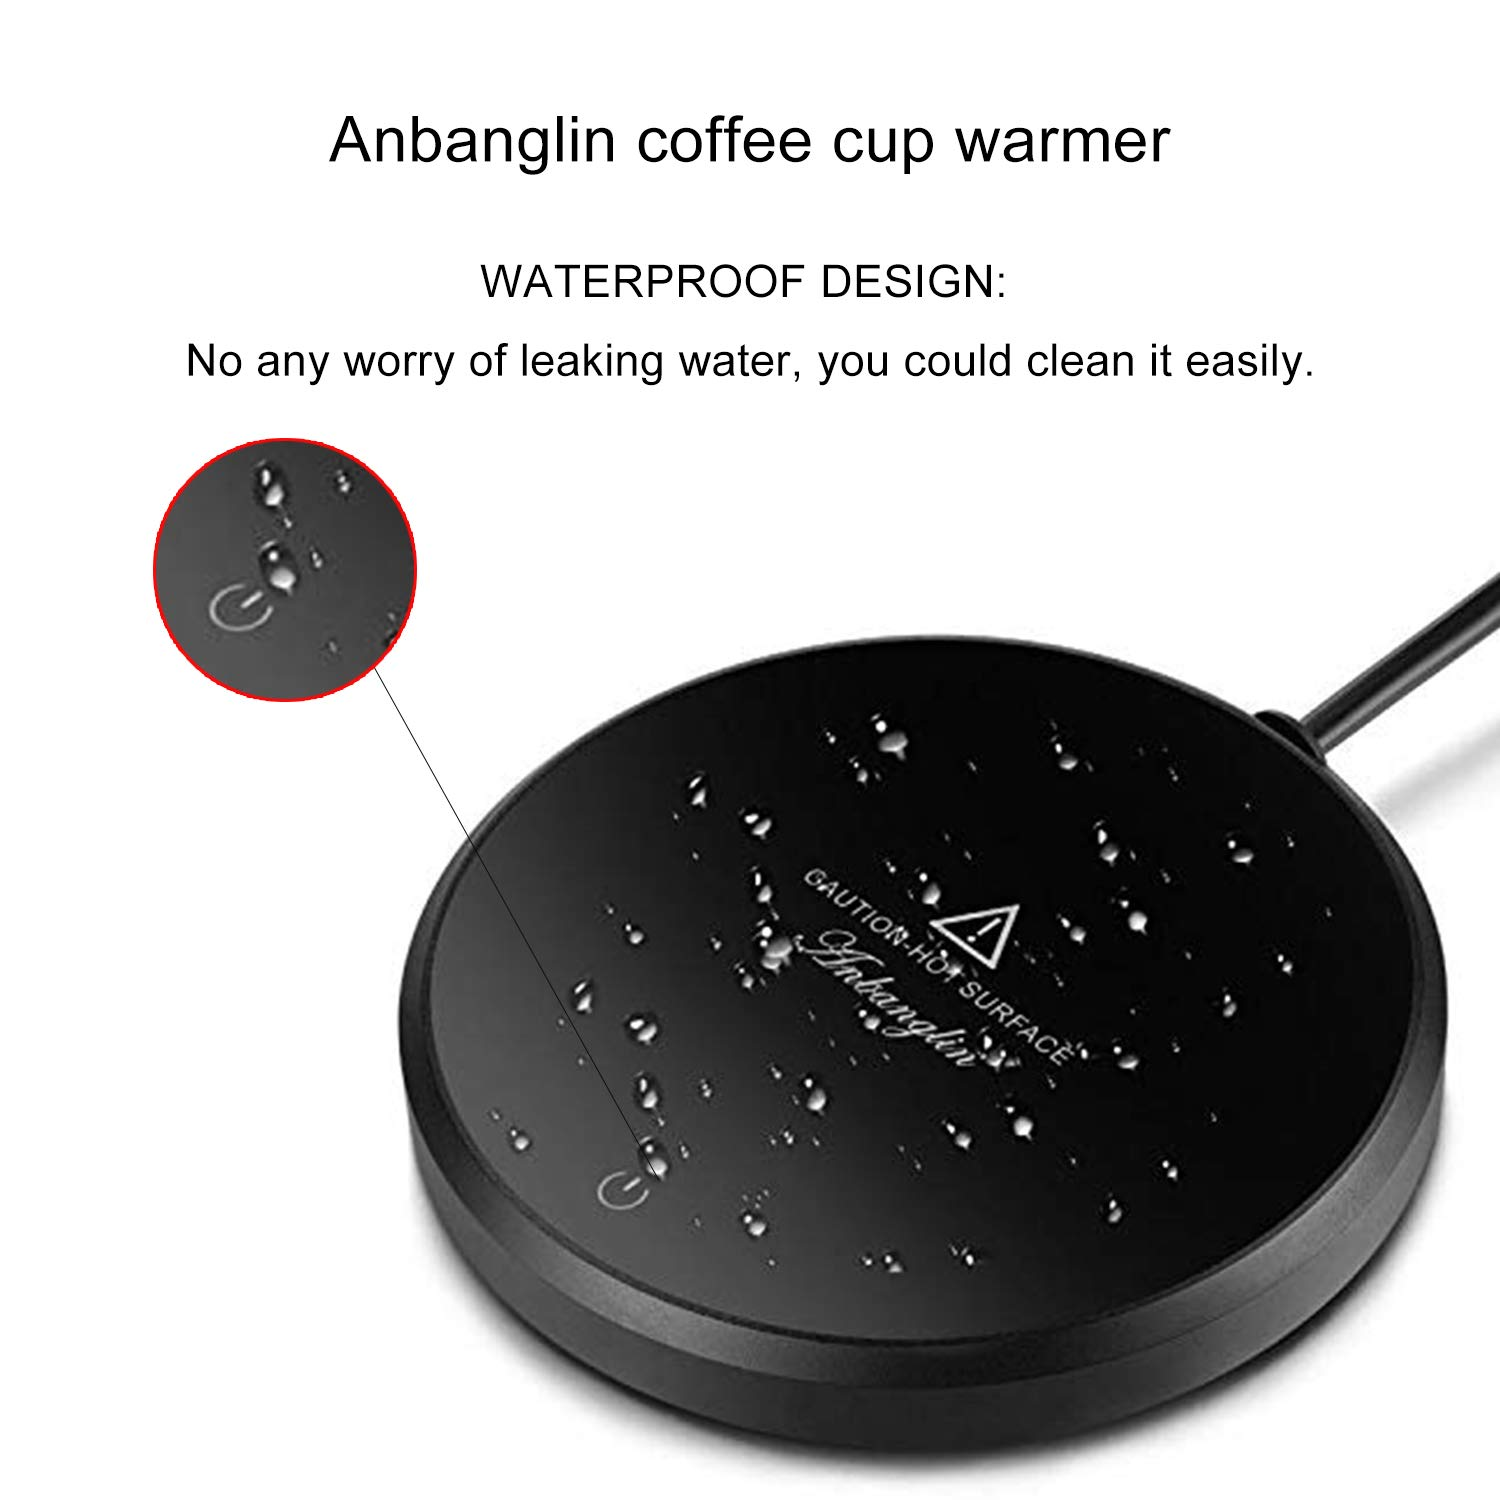 Anbanglin Coffee Mug Warmer Auto Shut Off for 4 hours Electric Cup Warmer Plate for Desk Office/Home Use 18-watt (sold without mug)